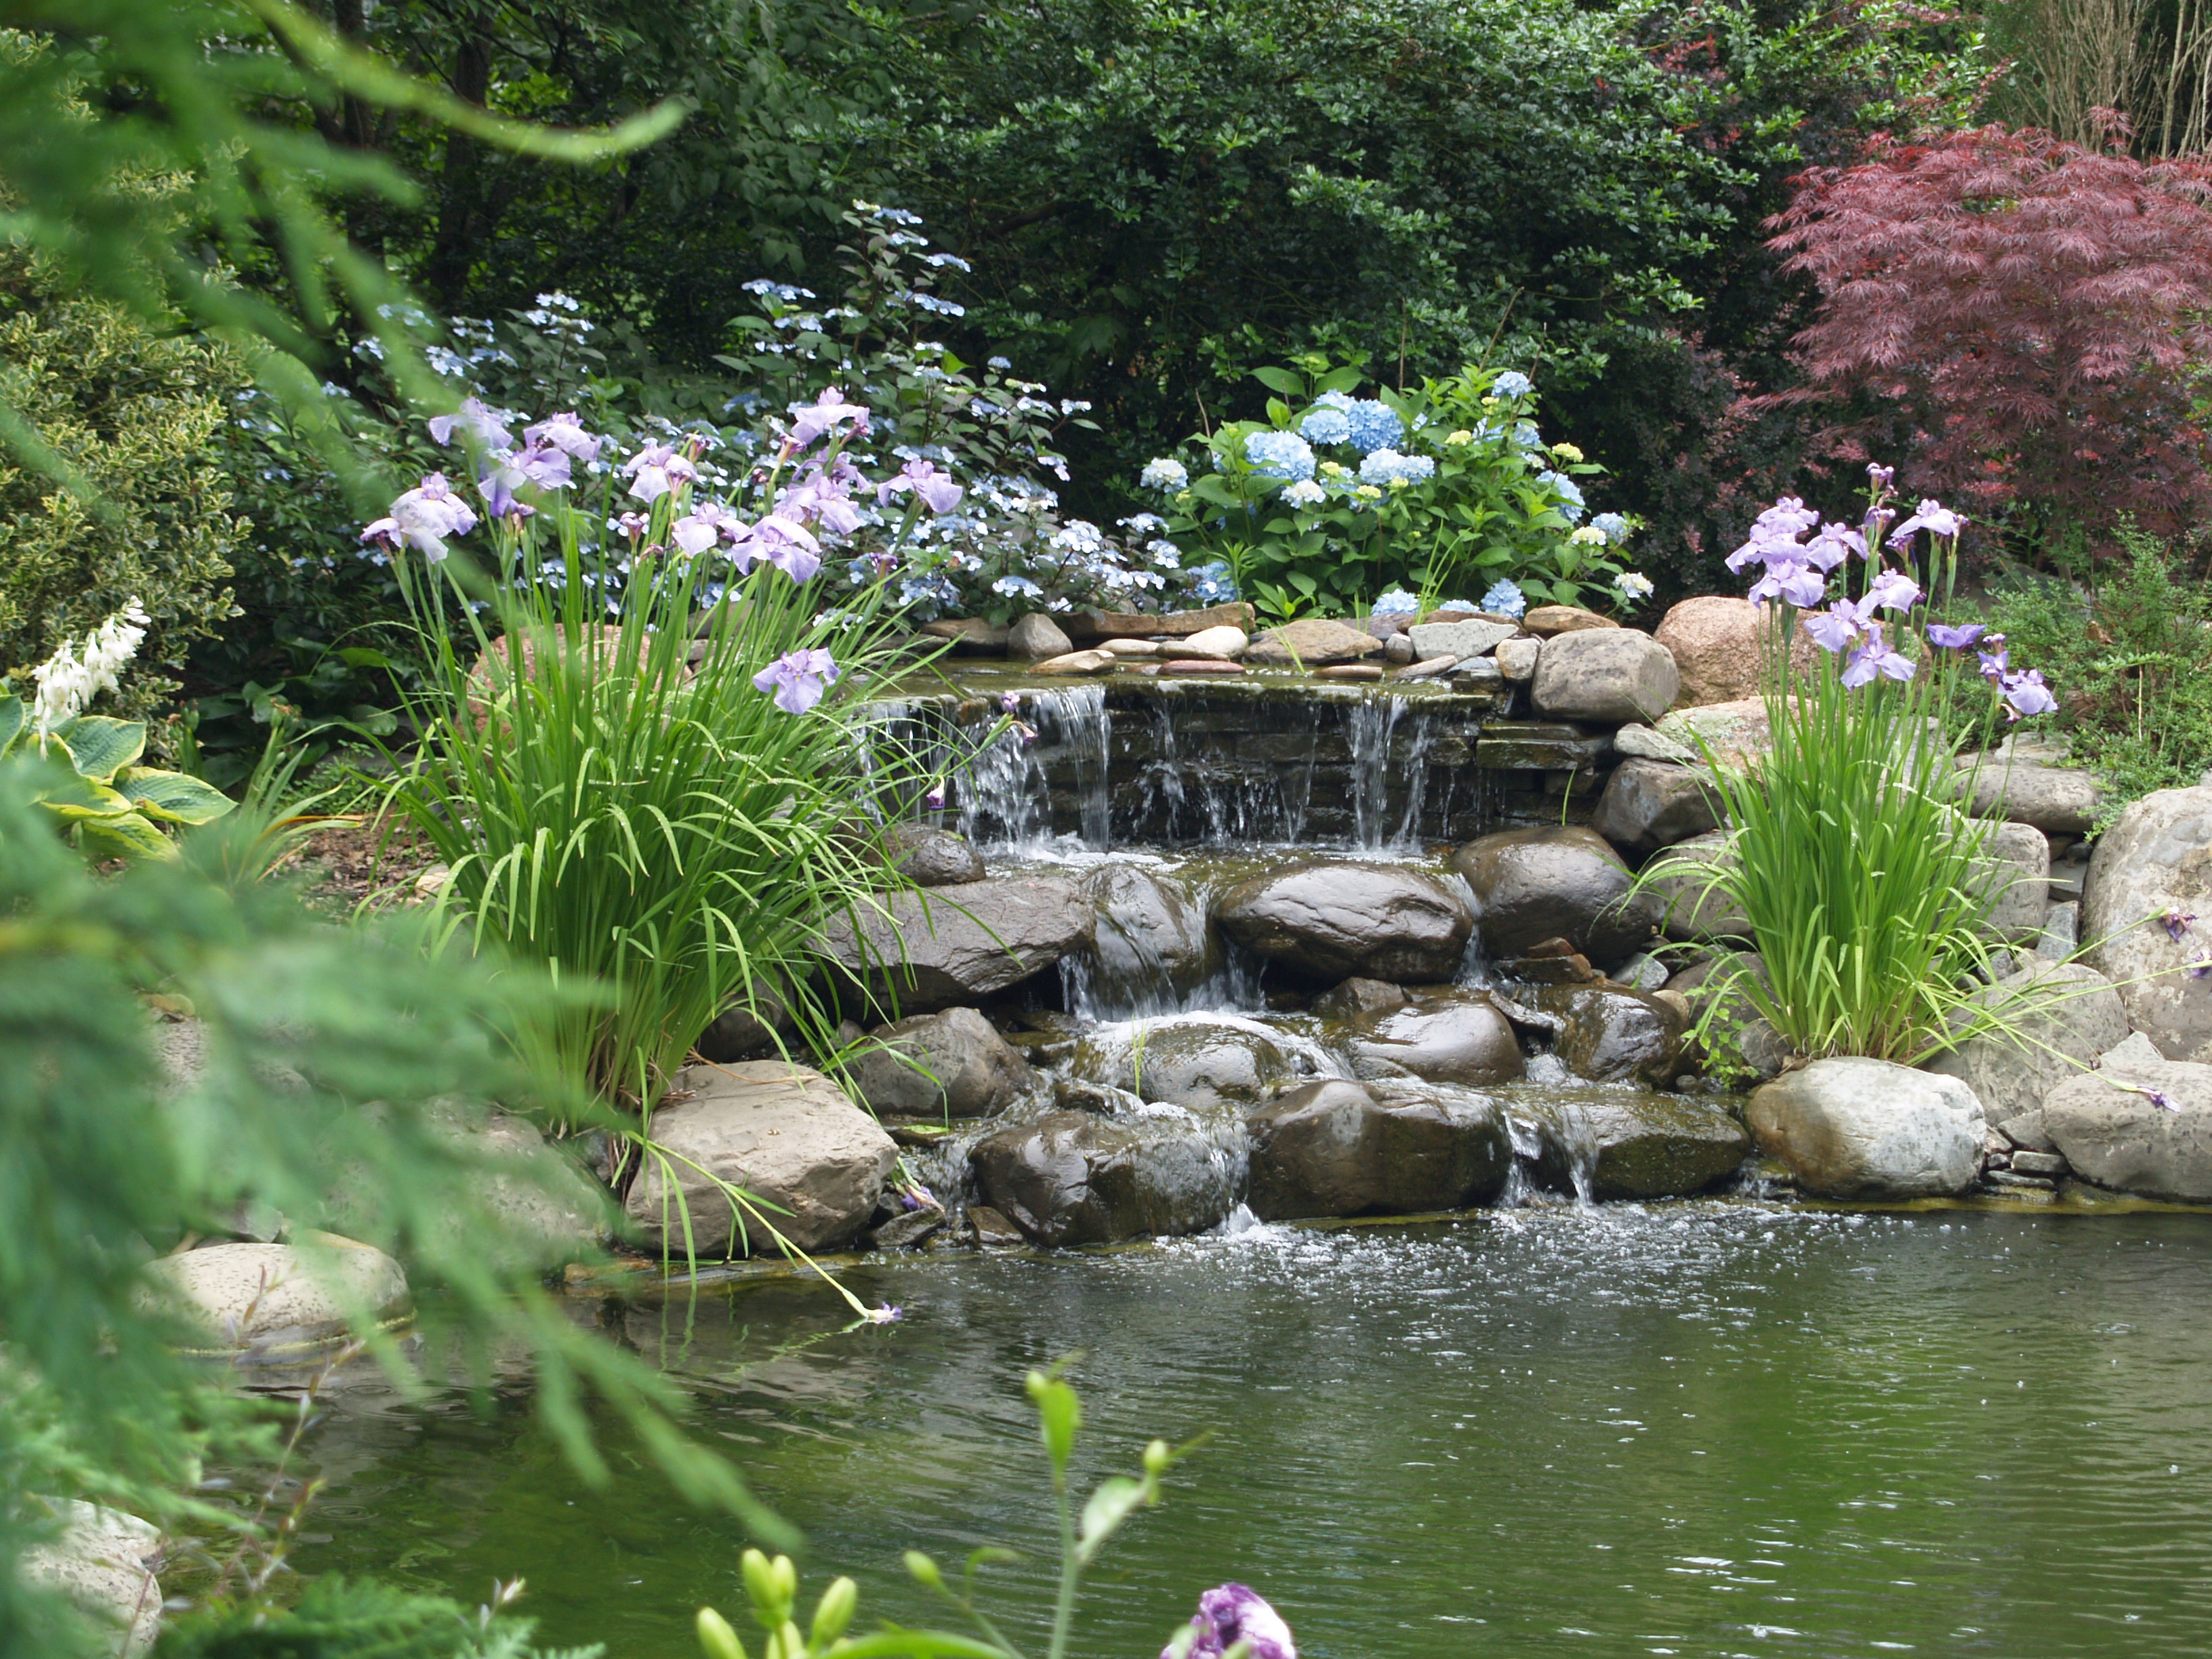 Garden ponds are a delight ramblin 39 through dave 39 s garden for Small garden with pond design